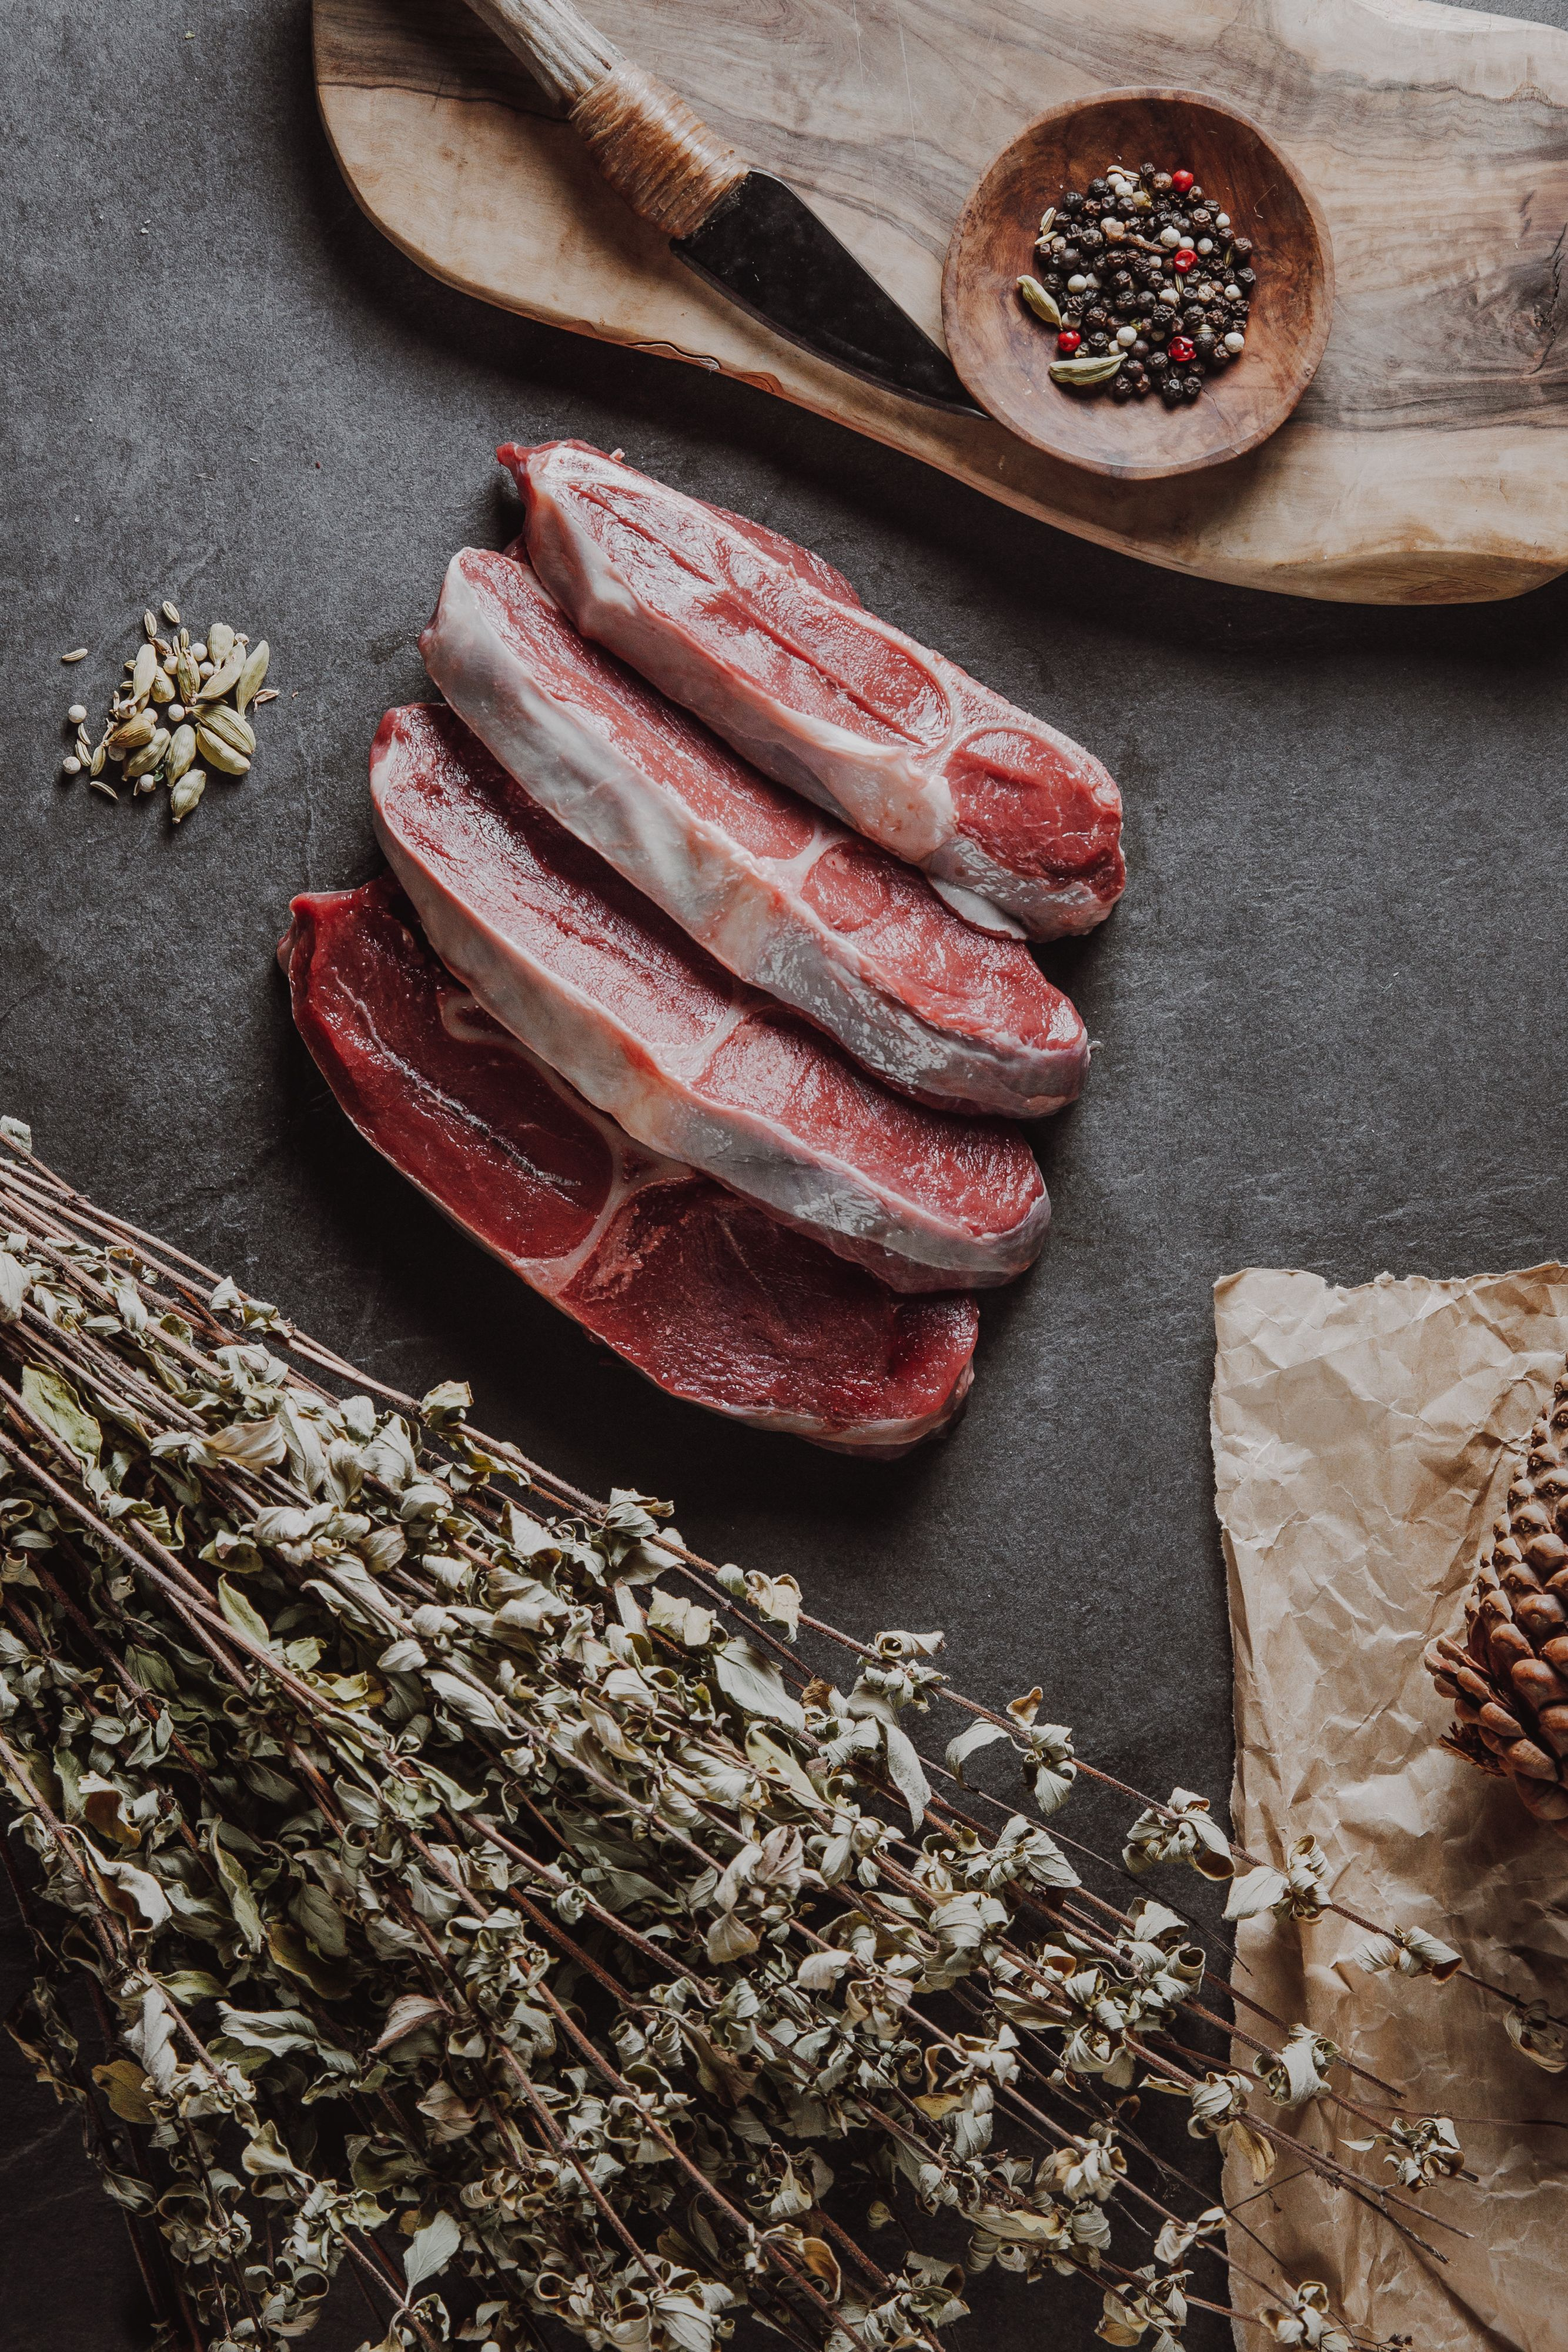 Wild venison shoulder blade chops on kitchen bench surrounded by herbs